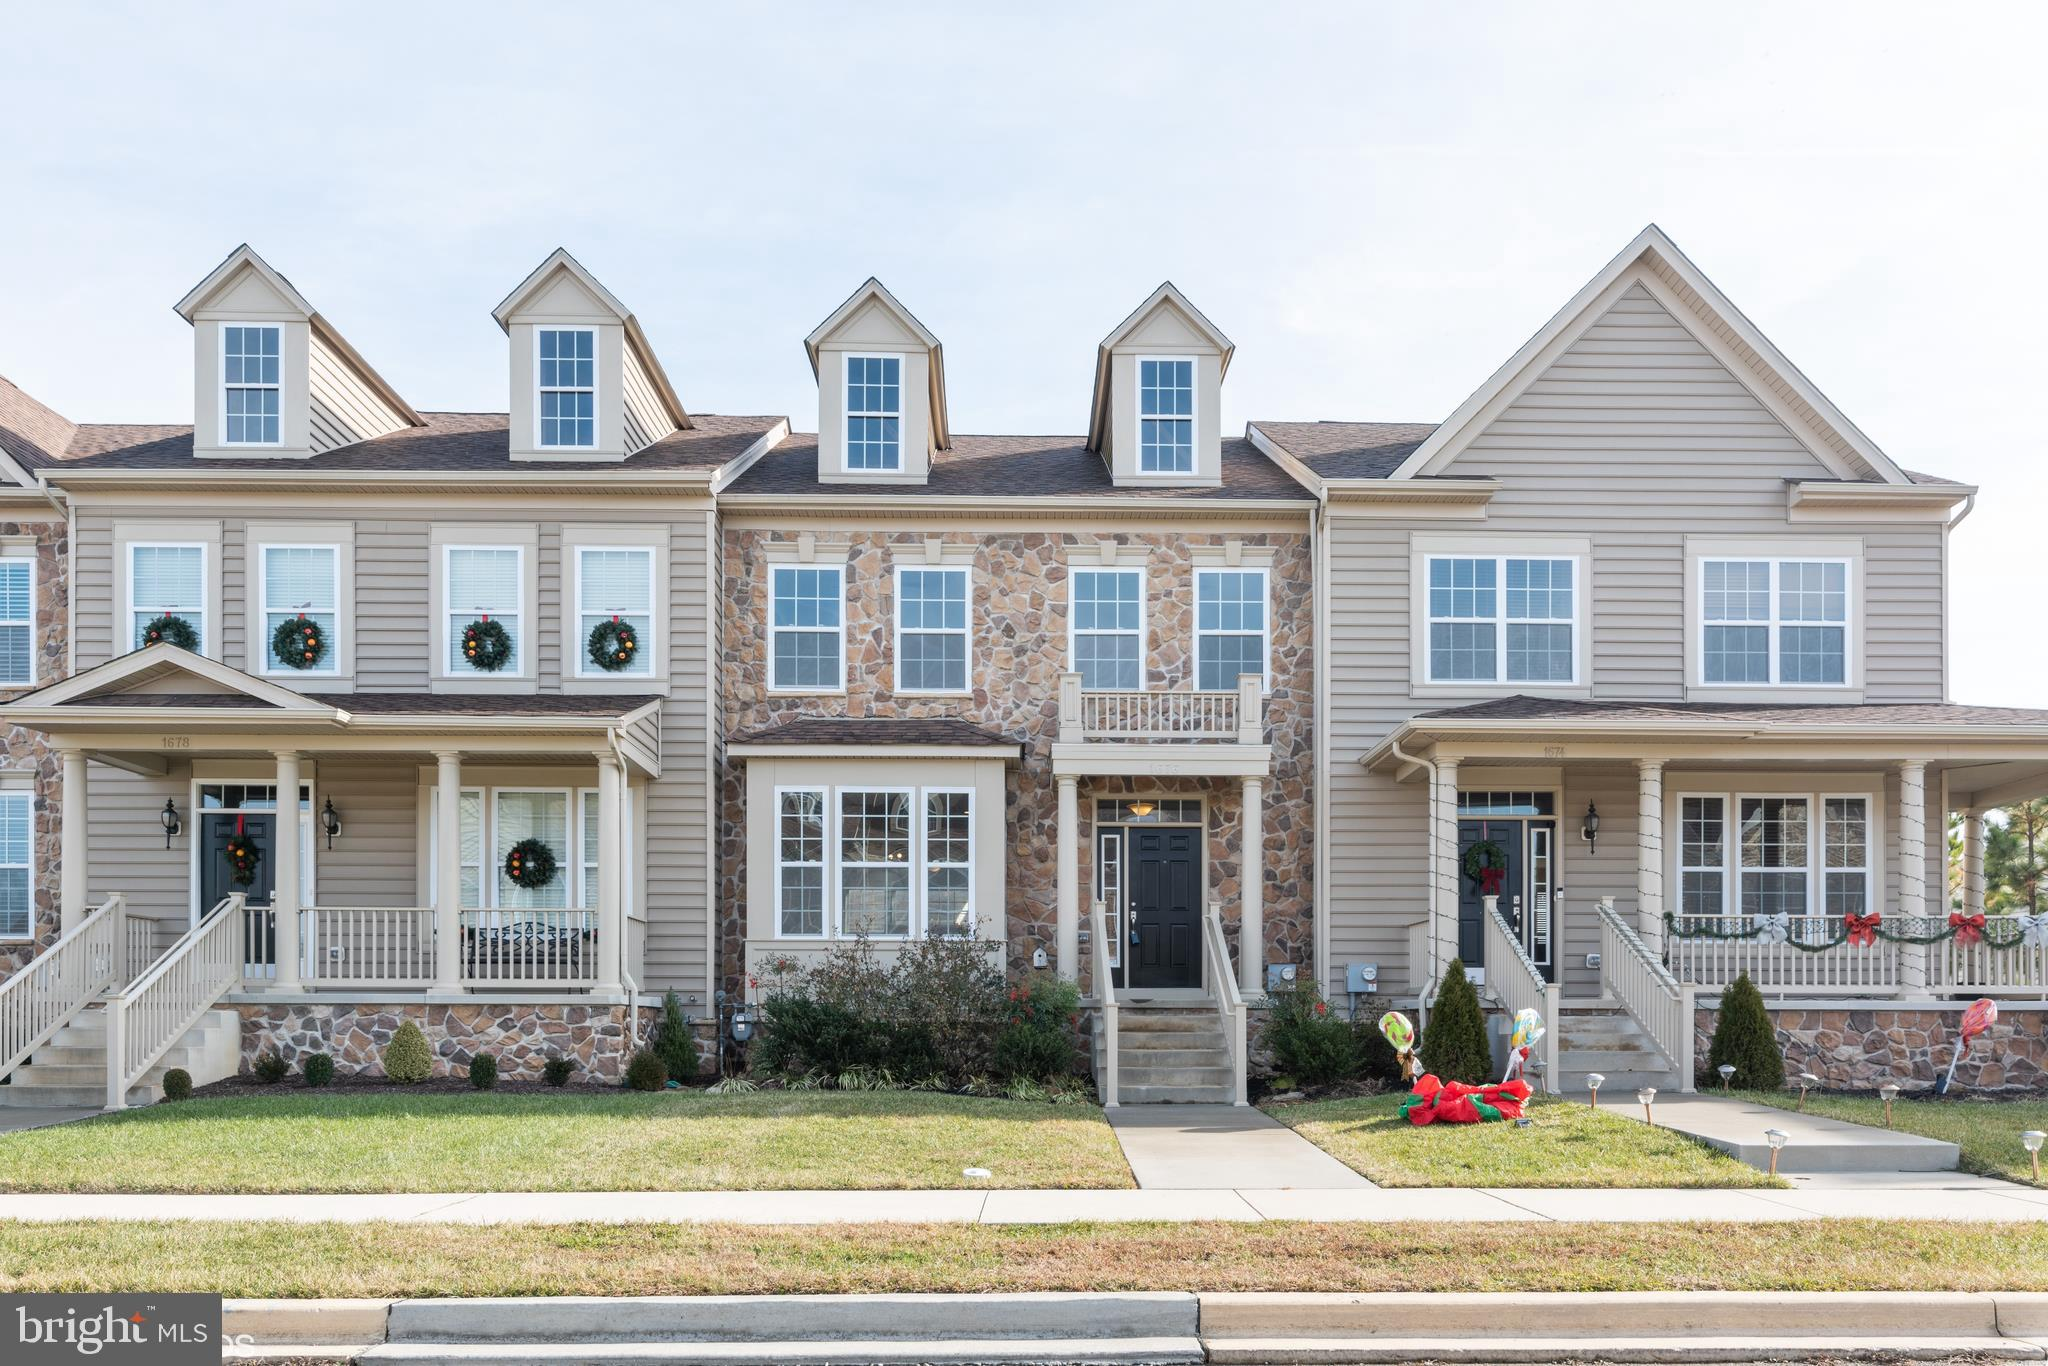 "Welcome to the in-demand community of Bayberry North!  This is a thoughtfully planned community with walking paths, common activity spaces, pet parks, sidewalks, street lights, rear alleys for garage loading -- an old world community not often found in Delaware.  Inviting front porch greets you and says ""come on in"".  Fresh paint in an appealing tone throughout is sure to please.  Soaring volume ceilings and rich dark hardwood floors grace the open concept floor plan.  Spacious great room provides versatile living arrangements and is wide open to dining space and kitchen.  Super kitchen features large center island and appealing white shaker cabinetry with cool granite counters complimented by stainless steel appliances.  Upstairs you will find a generous owner's suite with loads of windows,  spacious walk in closet and its own bathroom.  Remaining two bedrooms are well scaled with good closet space and share the hall bathroom.  All bedrooms have  new carpeting and padding to make this move-in ready! Centrally located 2nd floor laundry makes life a breeze.  Don't miss out on this fine opportunity to make the Village of Bayberry North your home.  Maintenance Association Fees in the amount of $480.00 annually.  Seller requires that offers be submitted on the HomePath website."